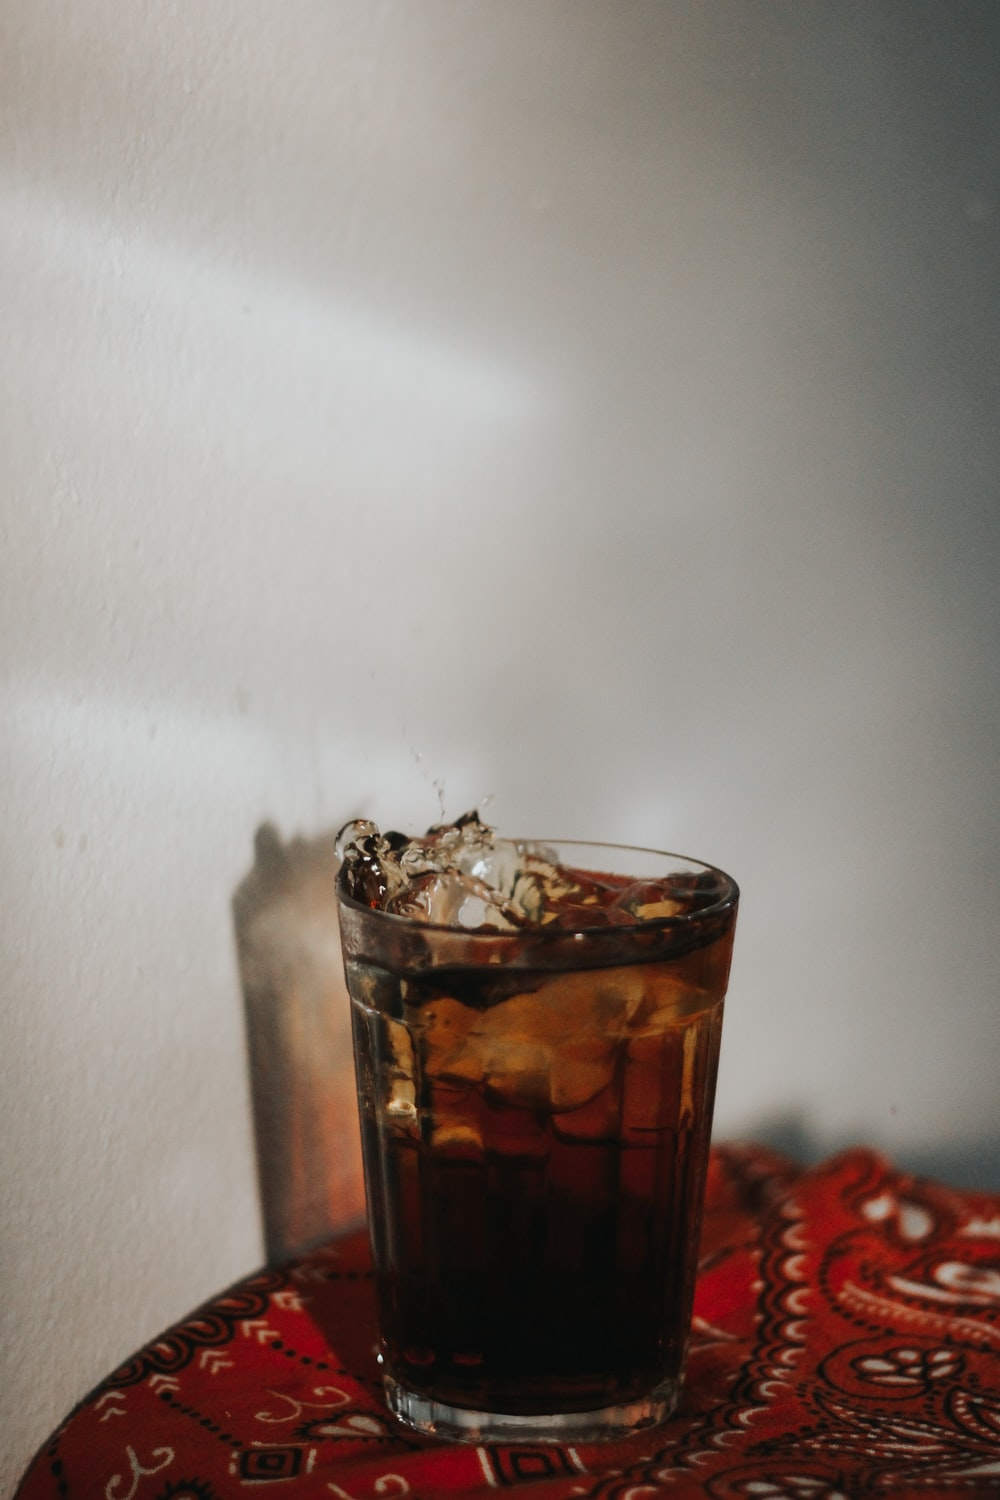 glass of carbonated drink on red bandana